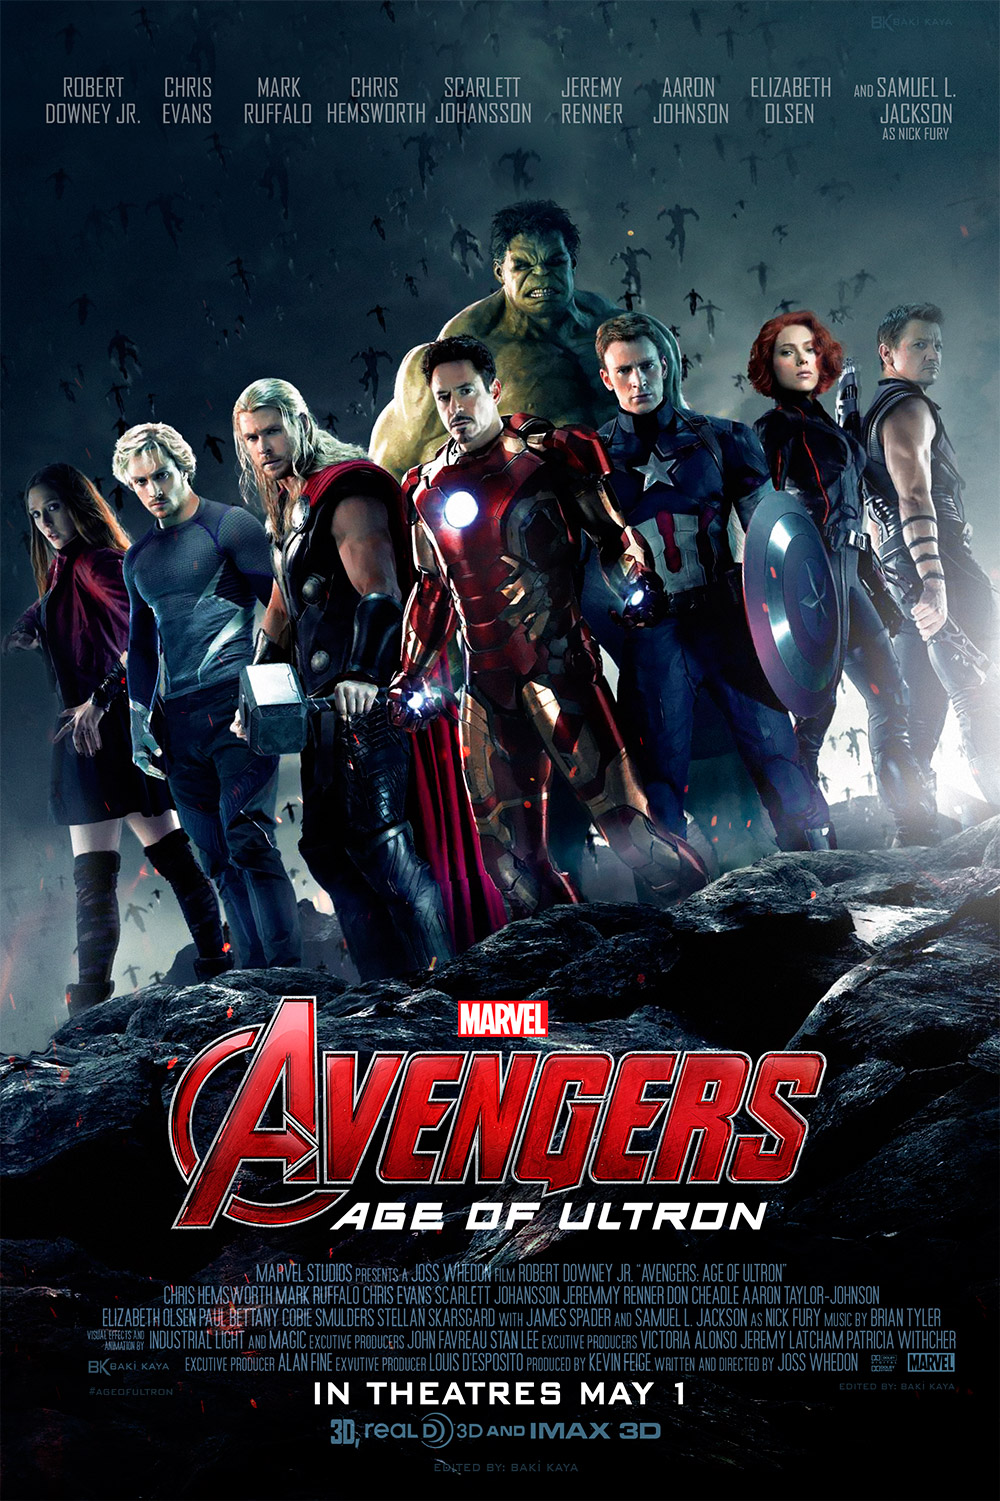 Avengers Age Of Ultron By Iloegbunam On Deviantart: Avengers: Age Of Ultron Poster (FM) By Krallbaki On DeviantArt